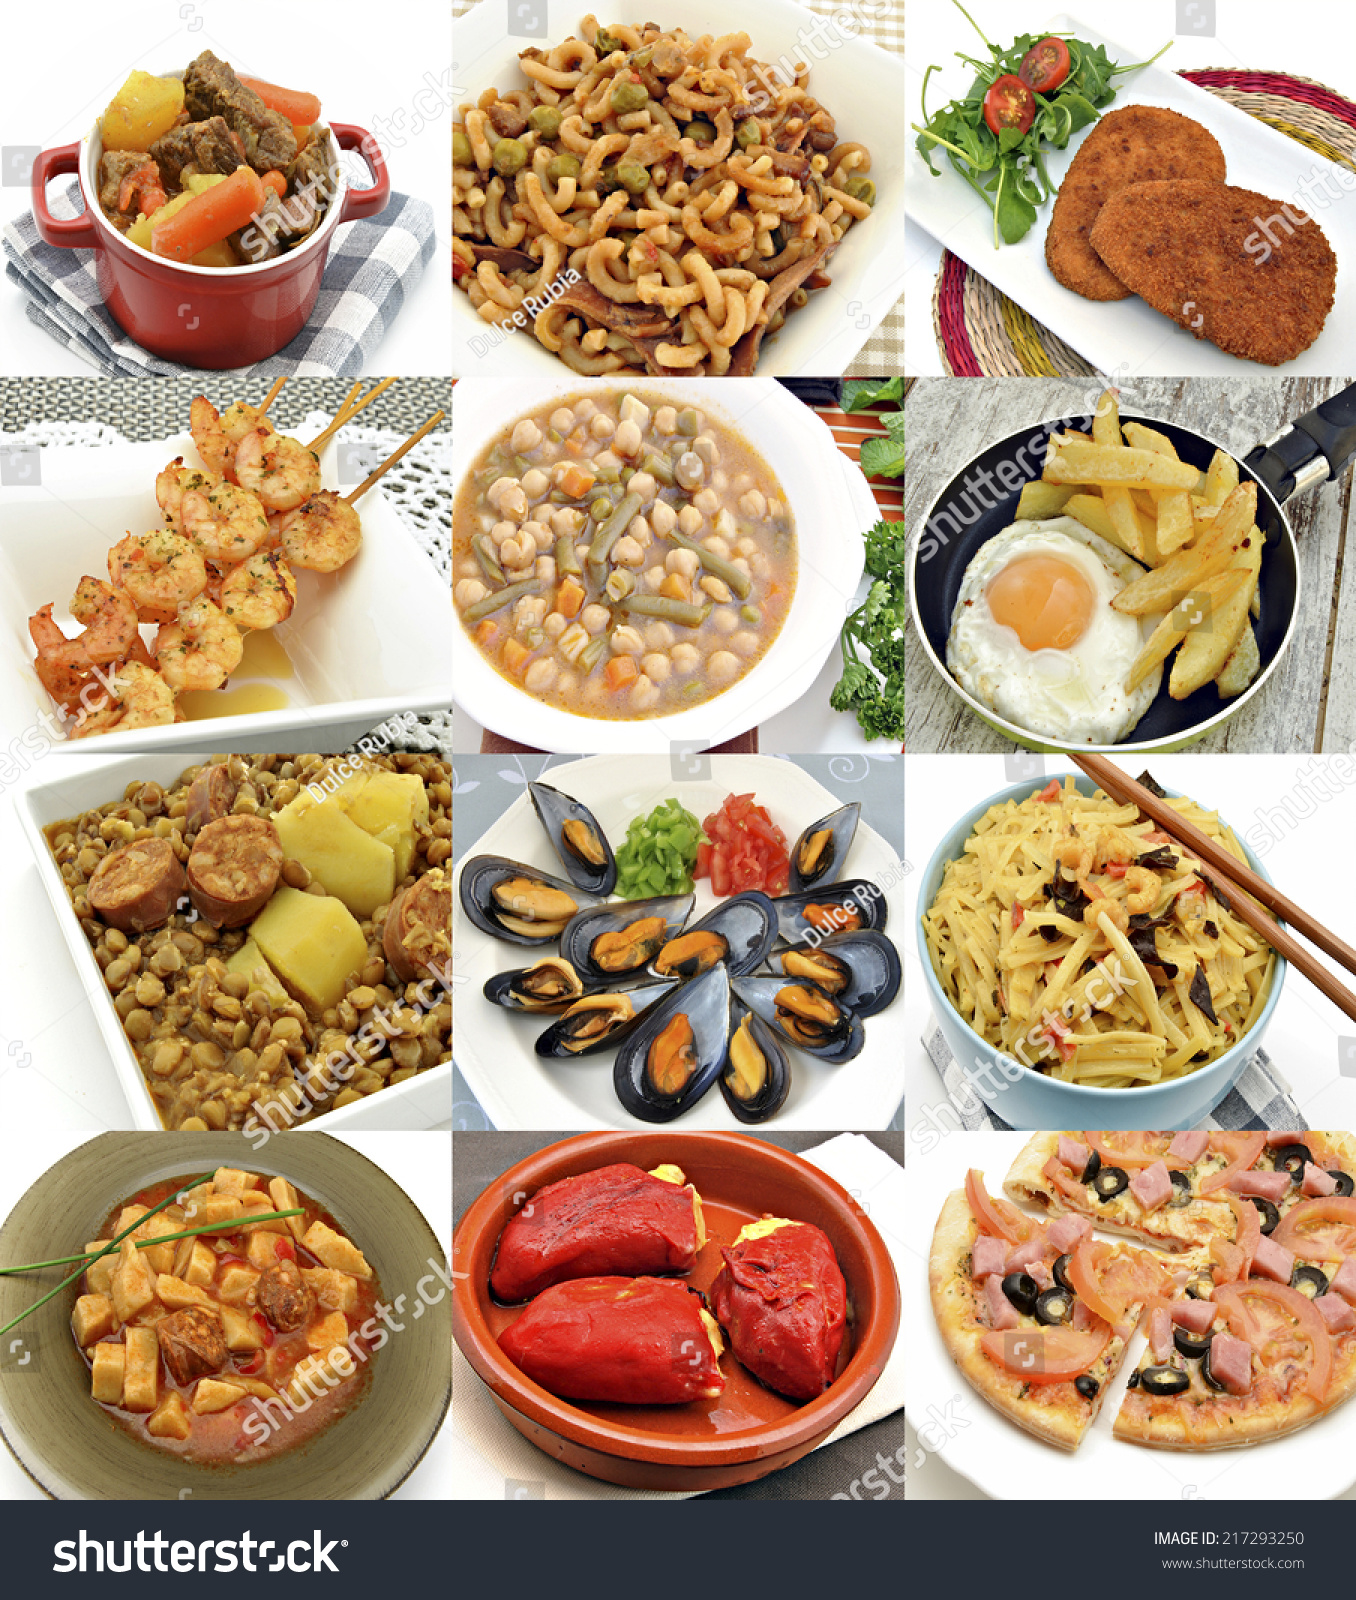 Collages Cooked Food Stock Photo 217293250 - Shutterstock